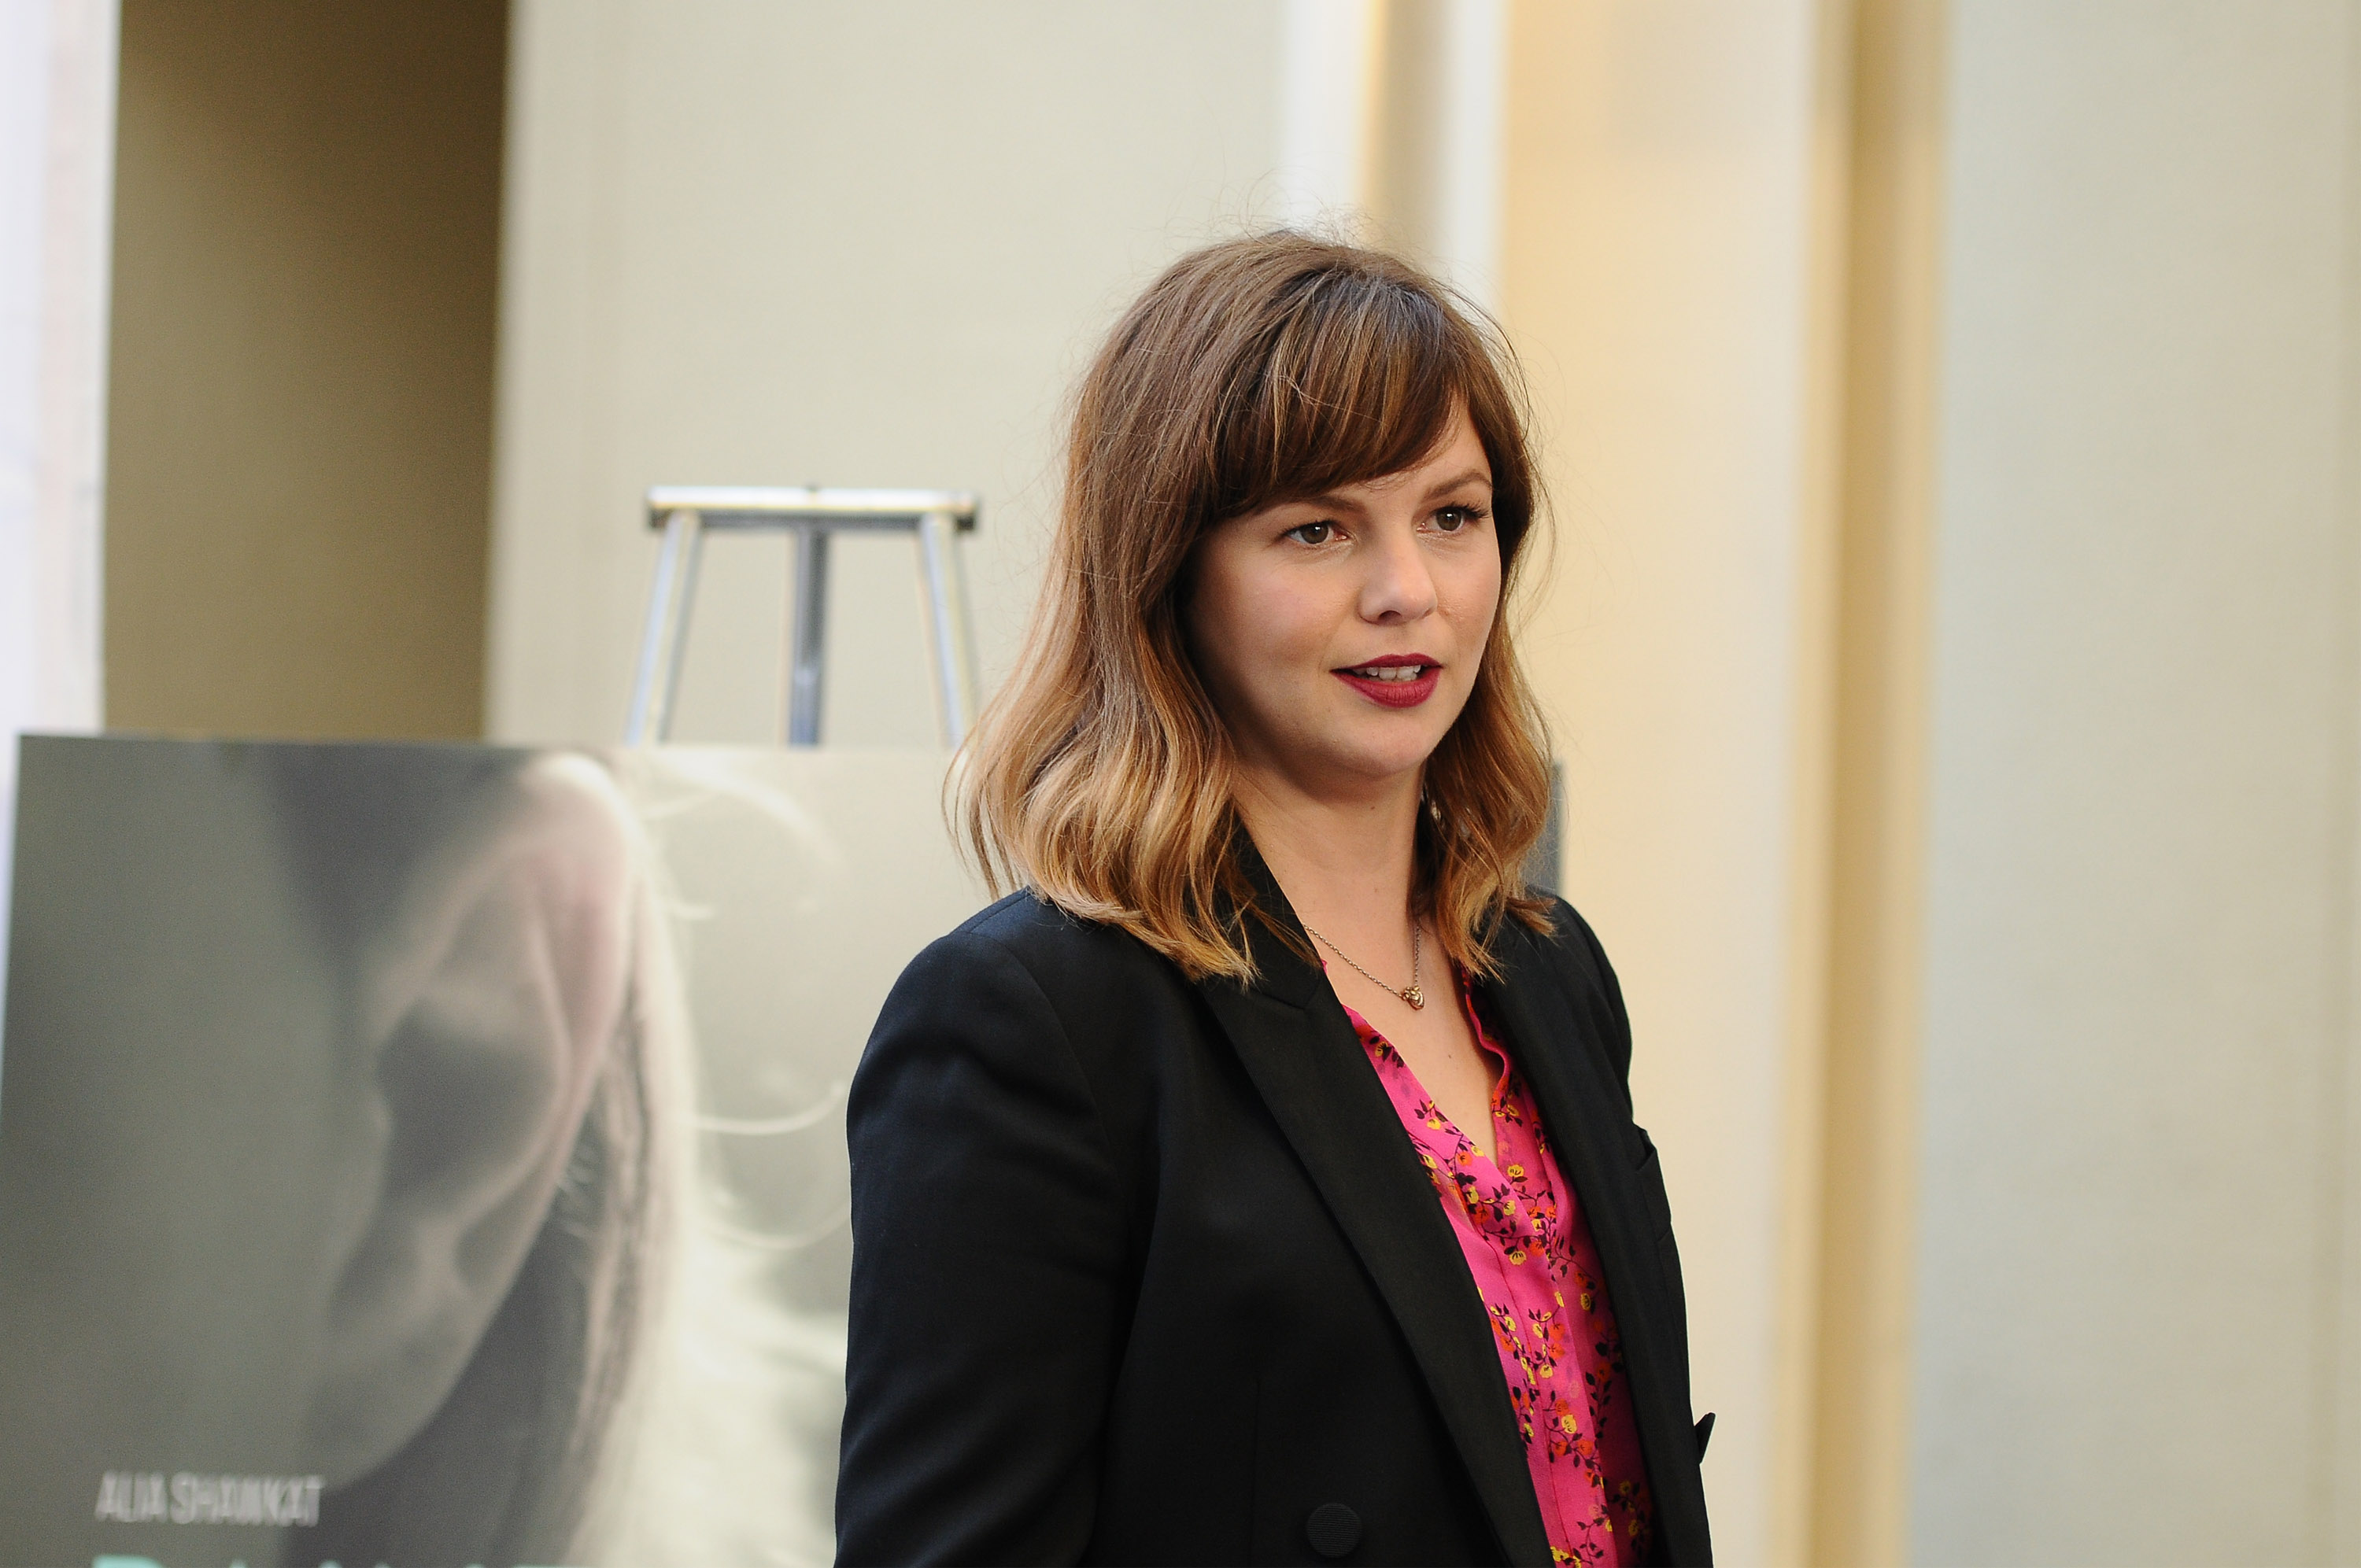 Read the moving poem Amber Tamblyn penned in honor of A Day Without A Woman